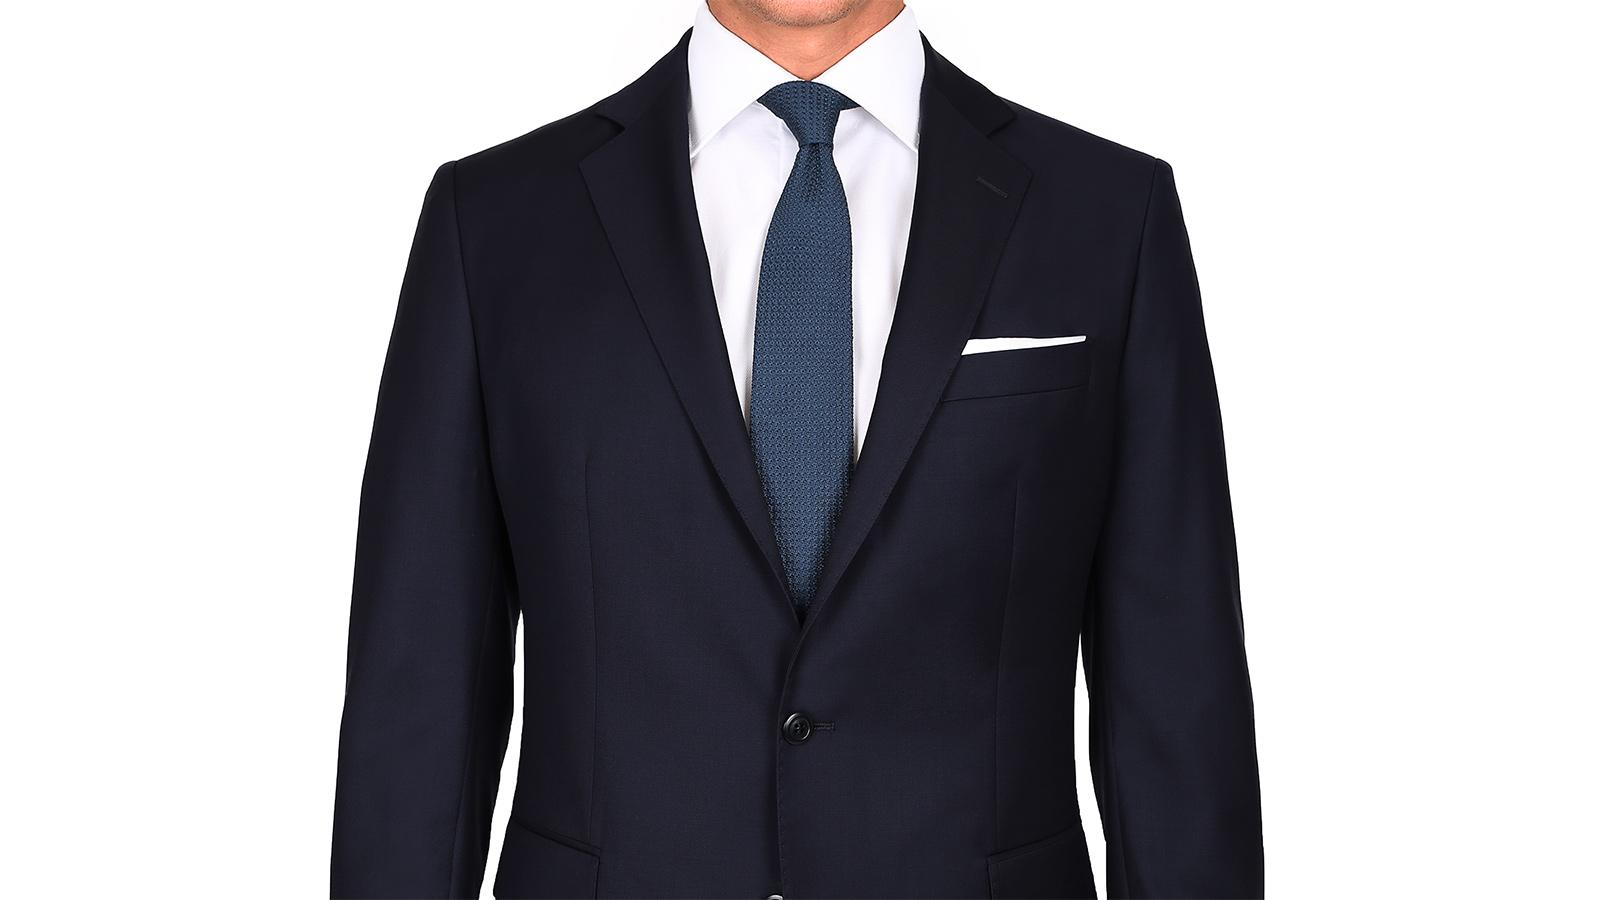 Suit in Solid Dark Navy Blue Wool - slider image 1